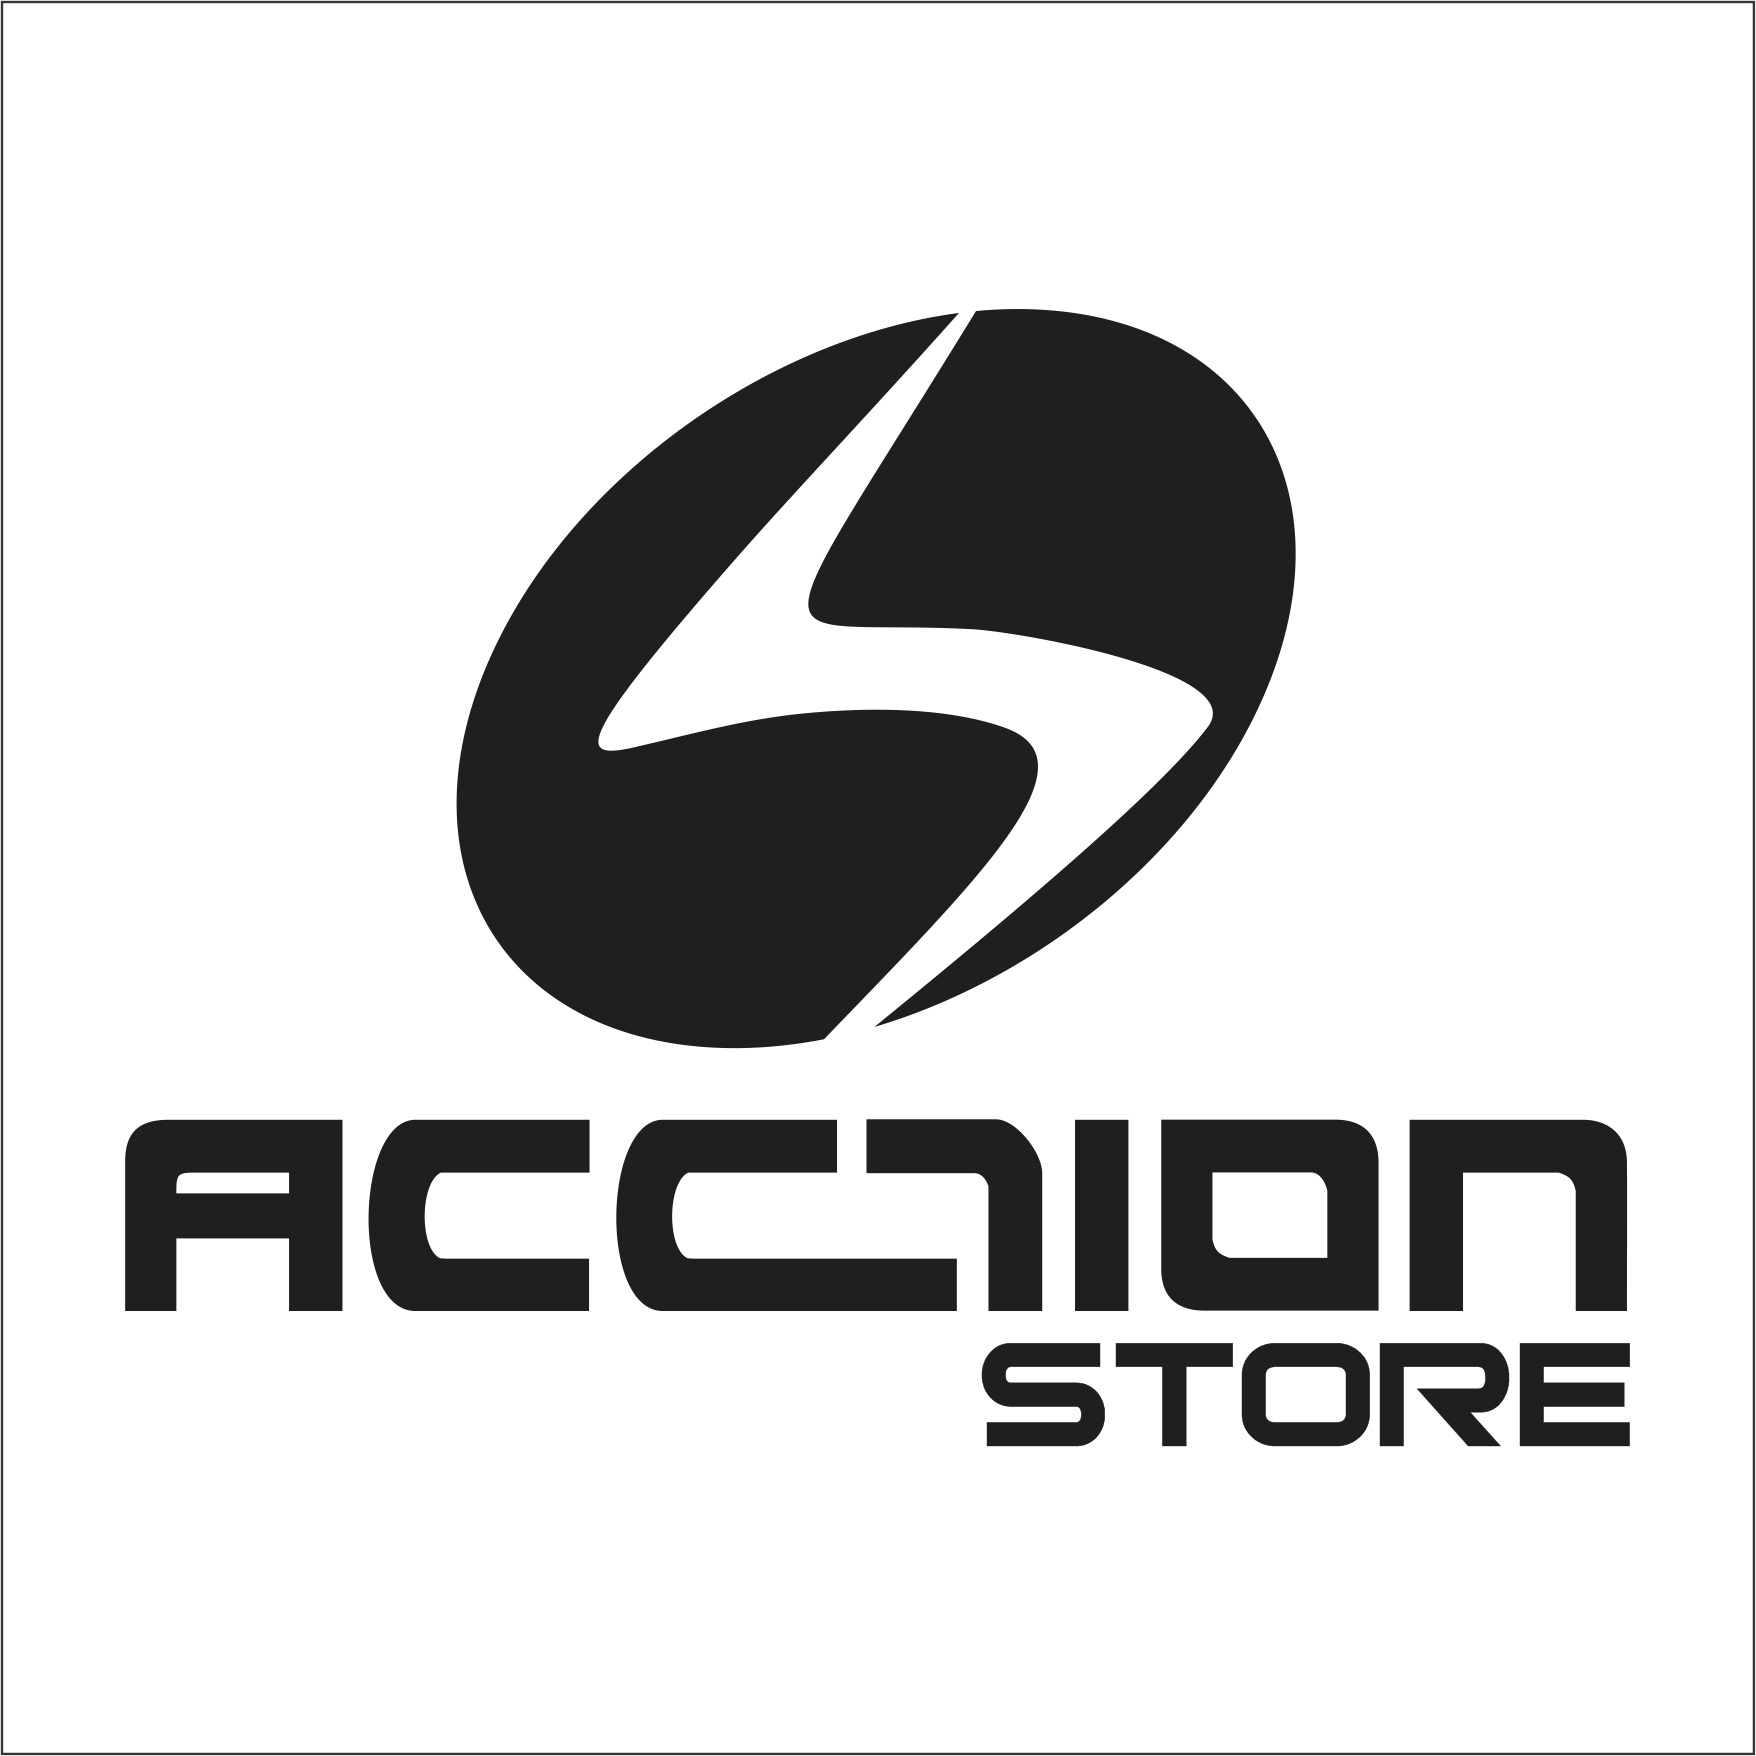 ACCTION